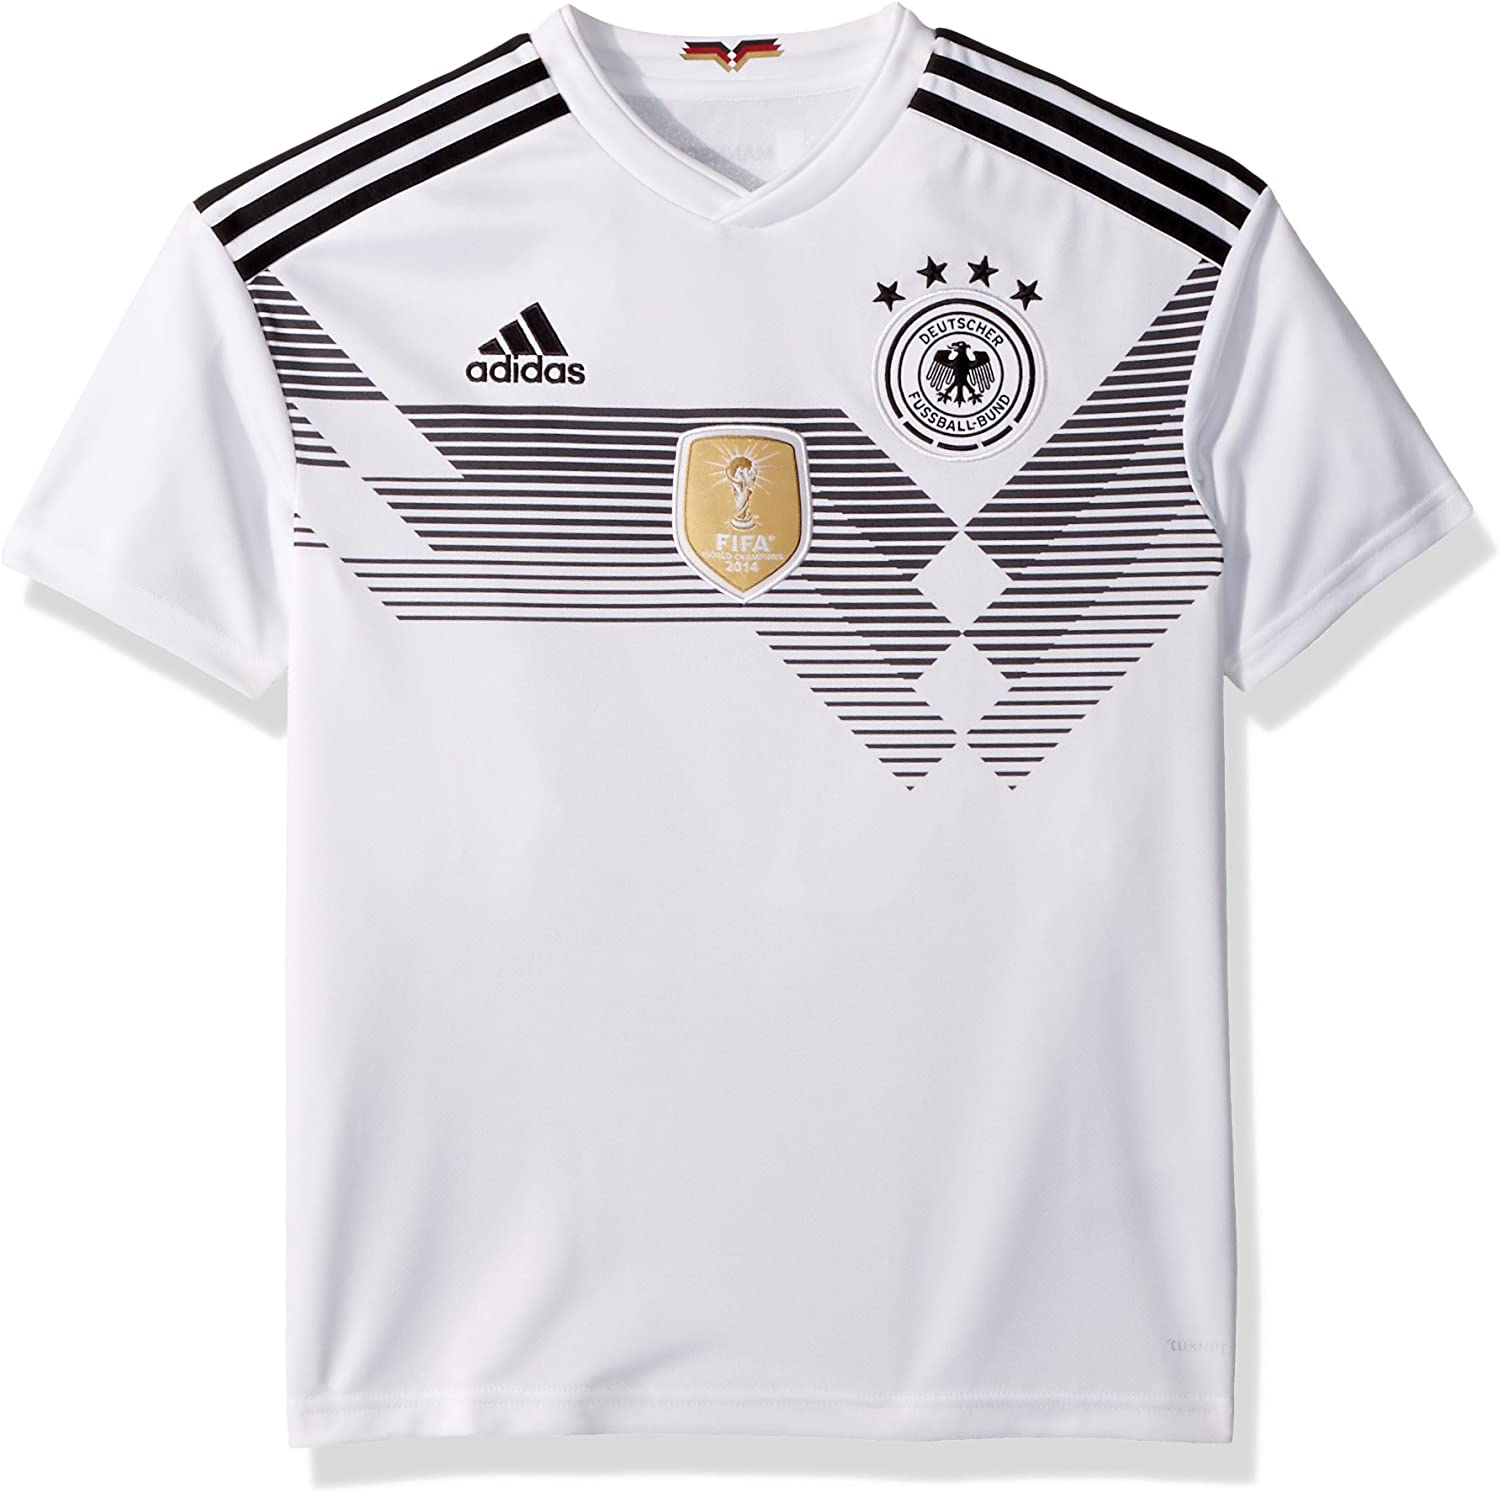 Adidas Germany Home Youth Jersey World Cup Russia 2018